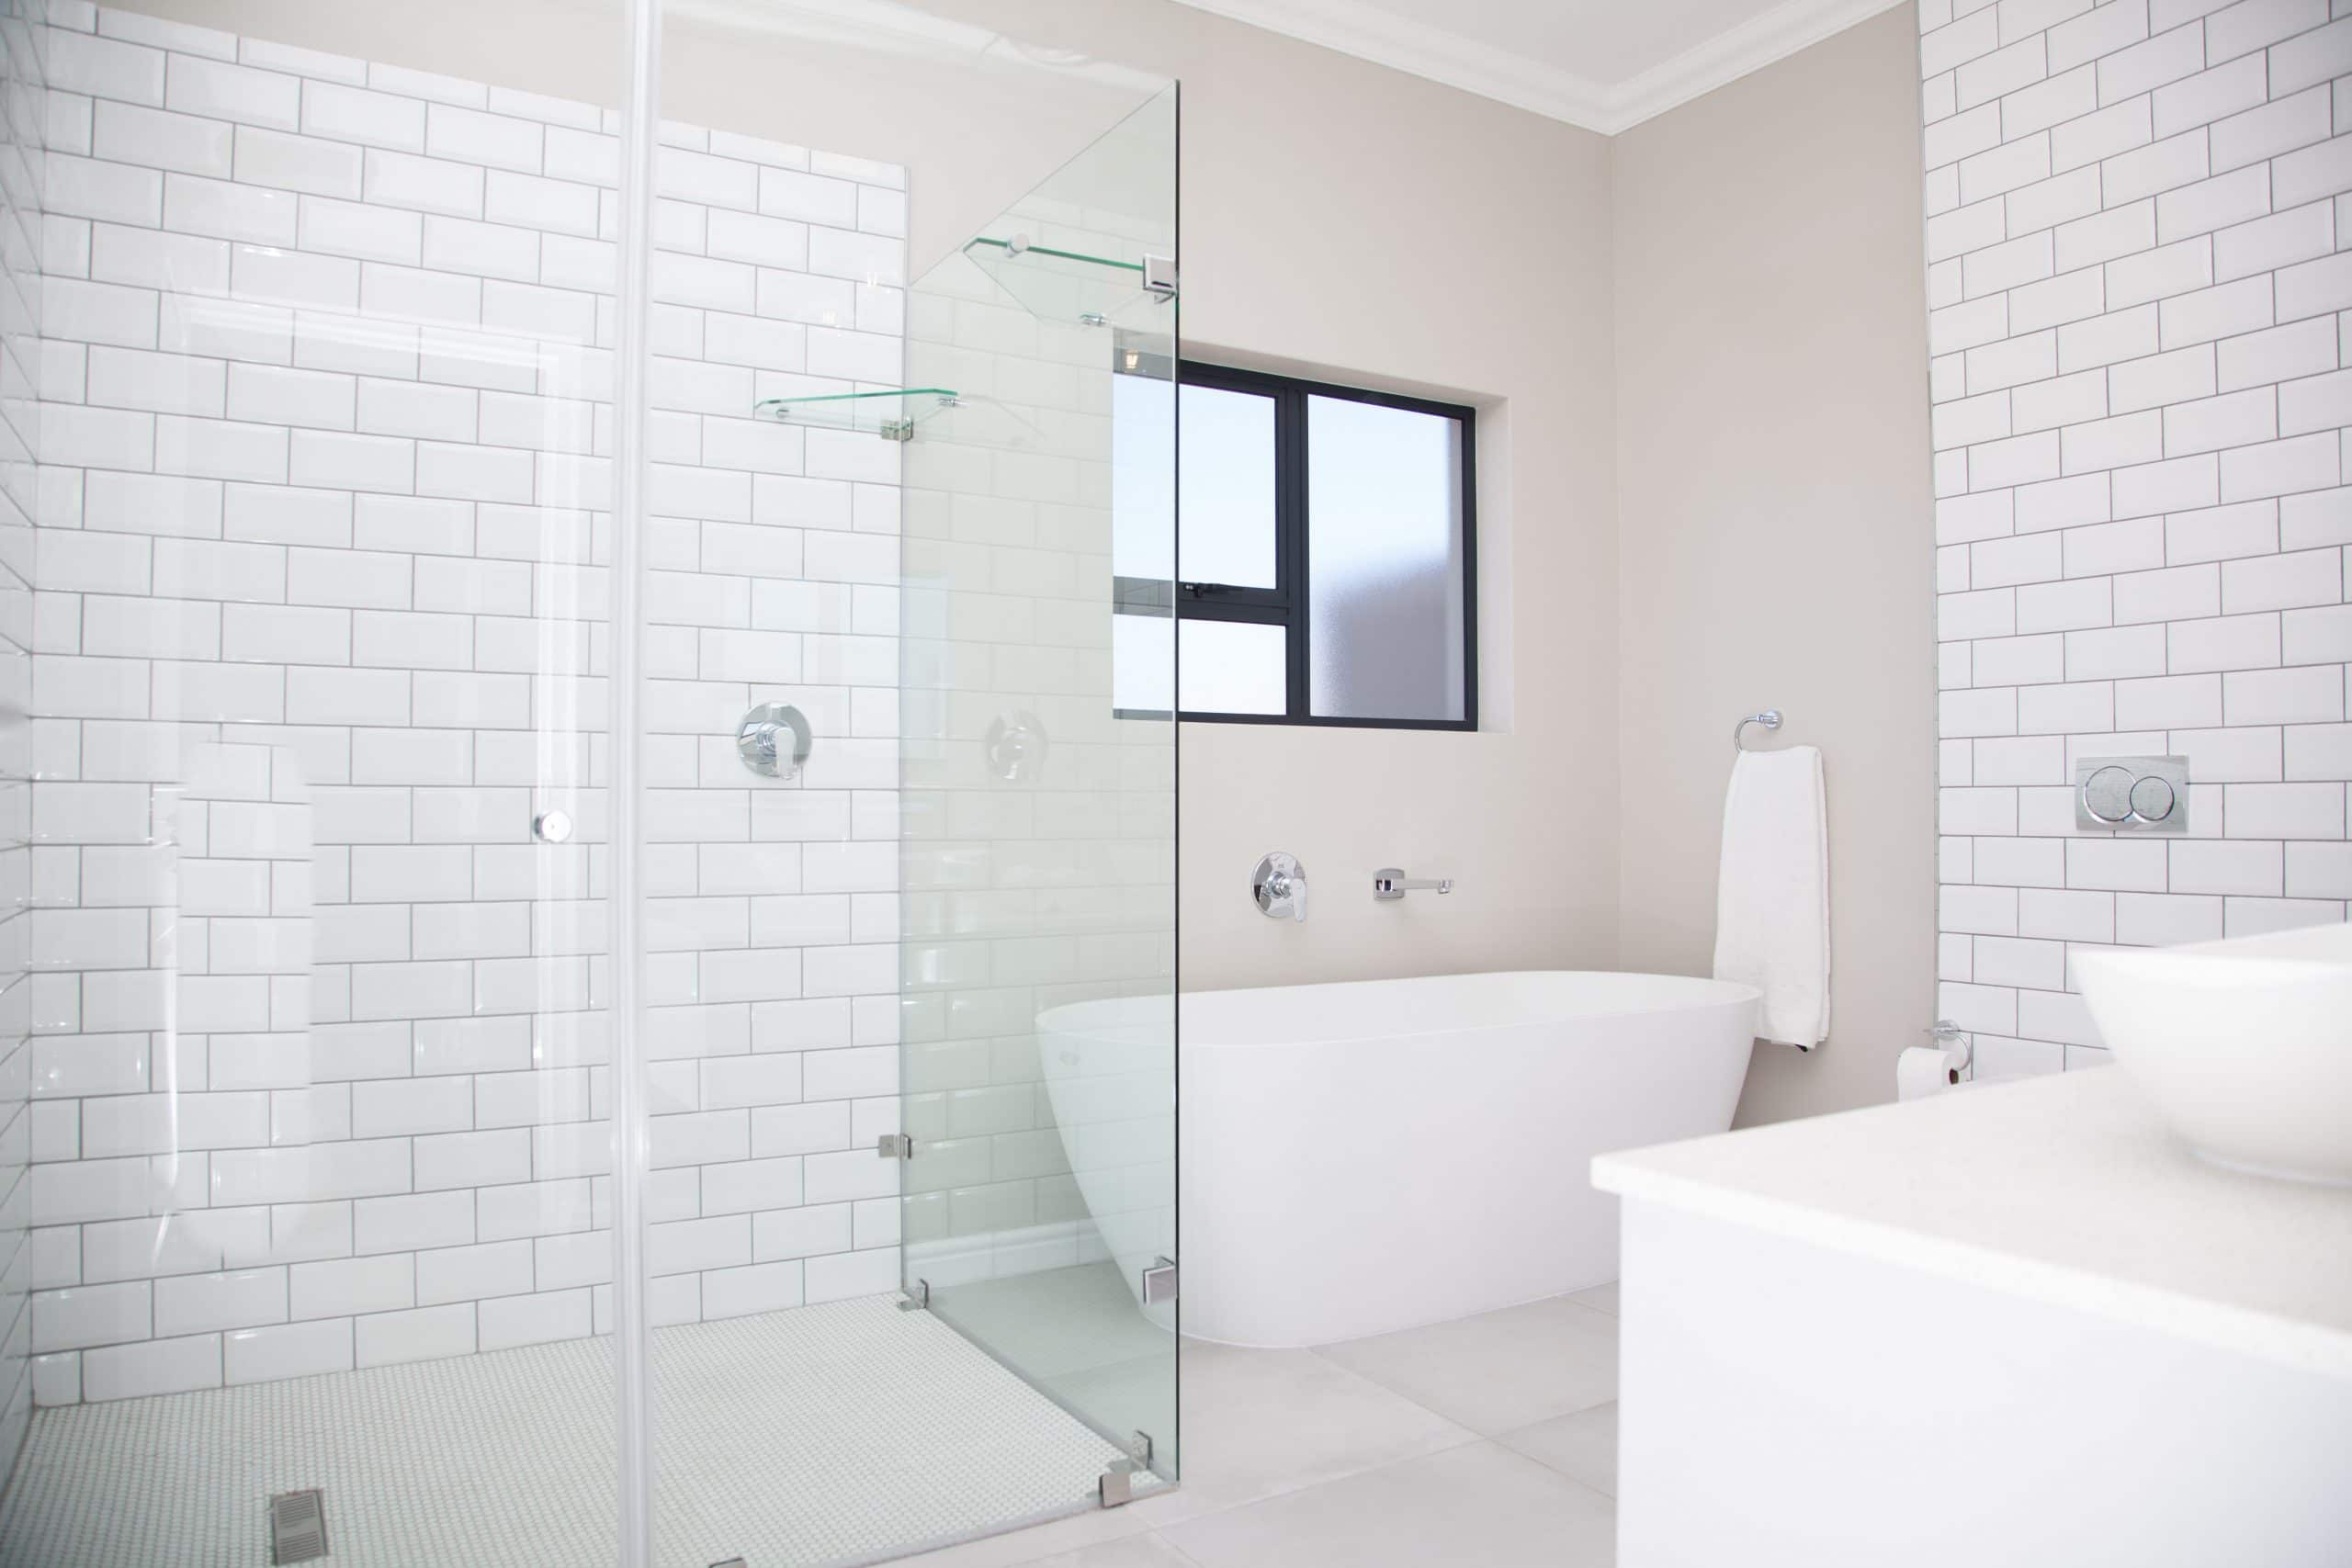 old school subway shower wall tiles with freestanding bath and white bathroom